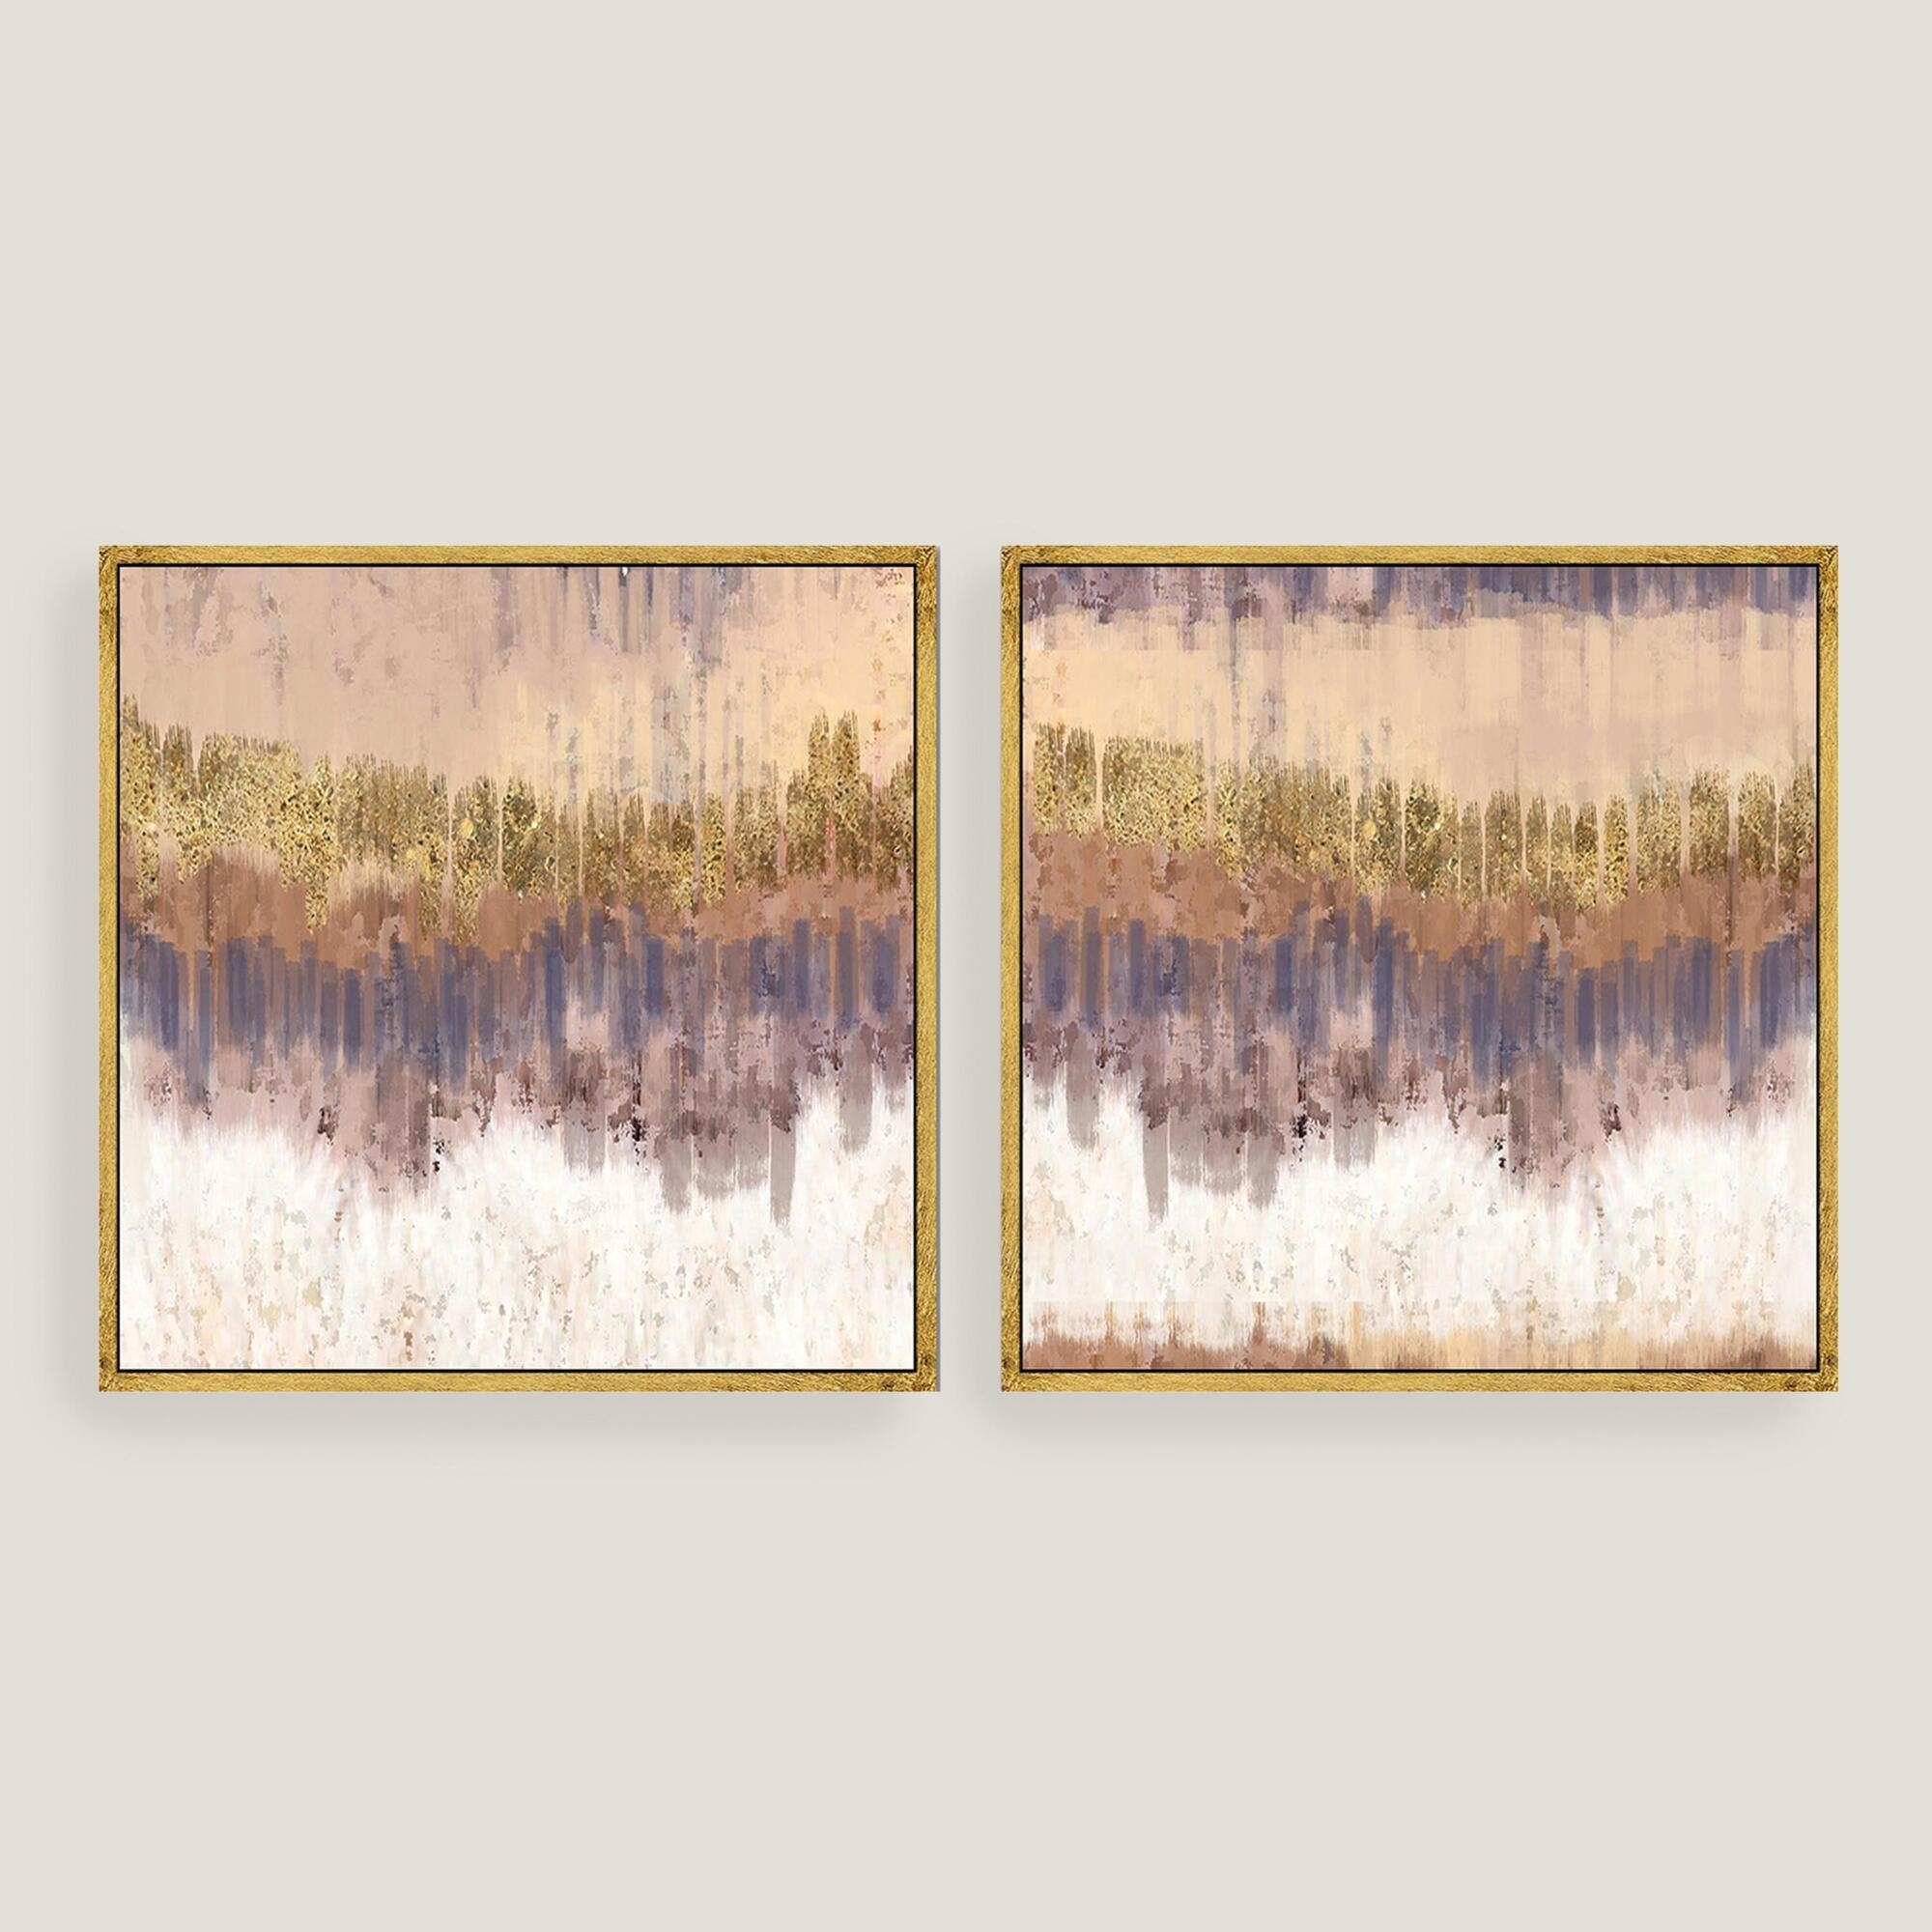 Wall Art Designs: Kirklands Wall Art Golden Field Abstract Canvas Regarding Most Up To Date Gold Canvas Wall Art (View 9 of 15)